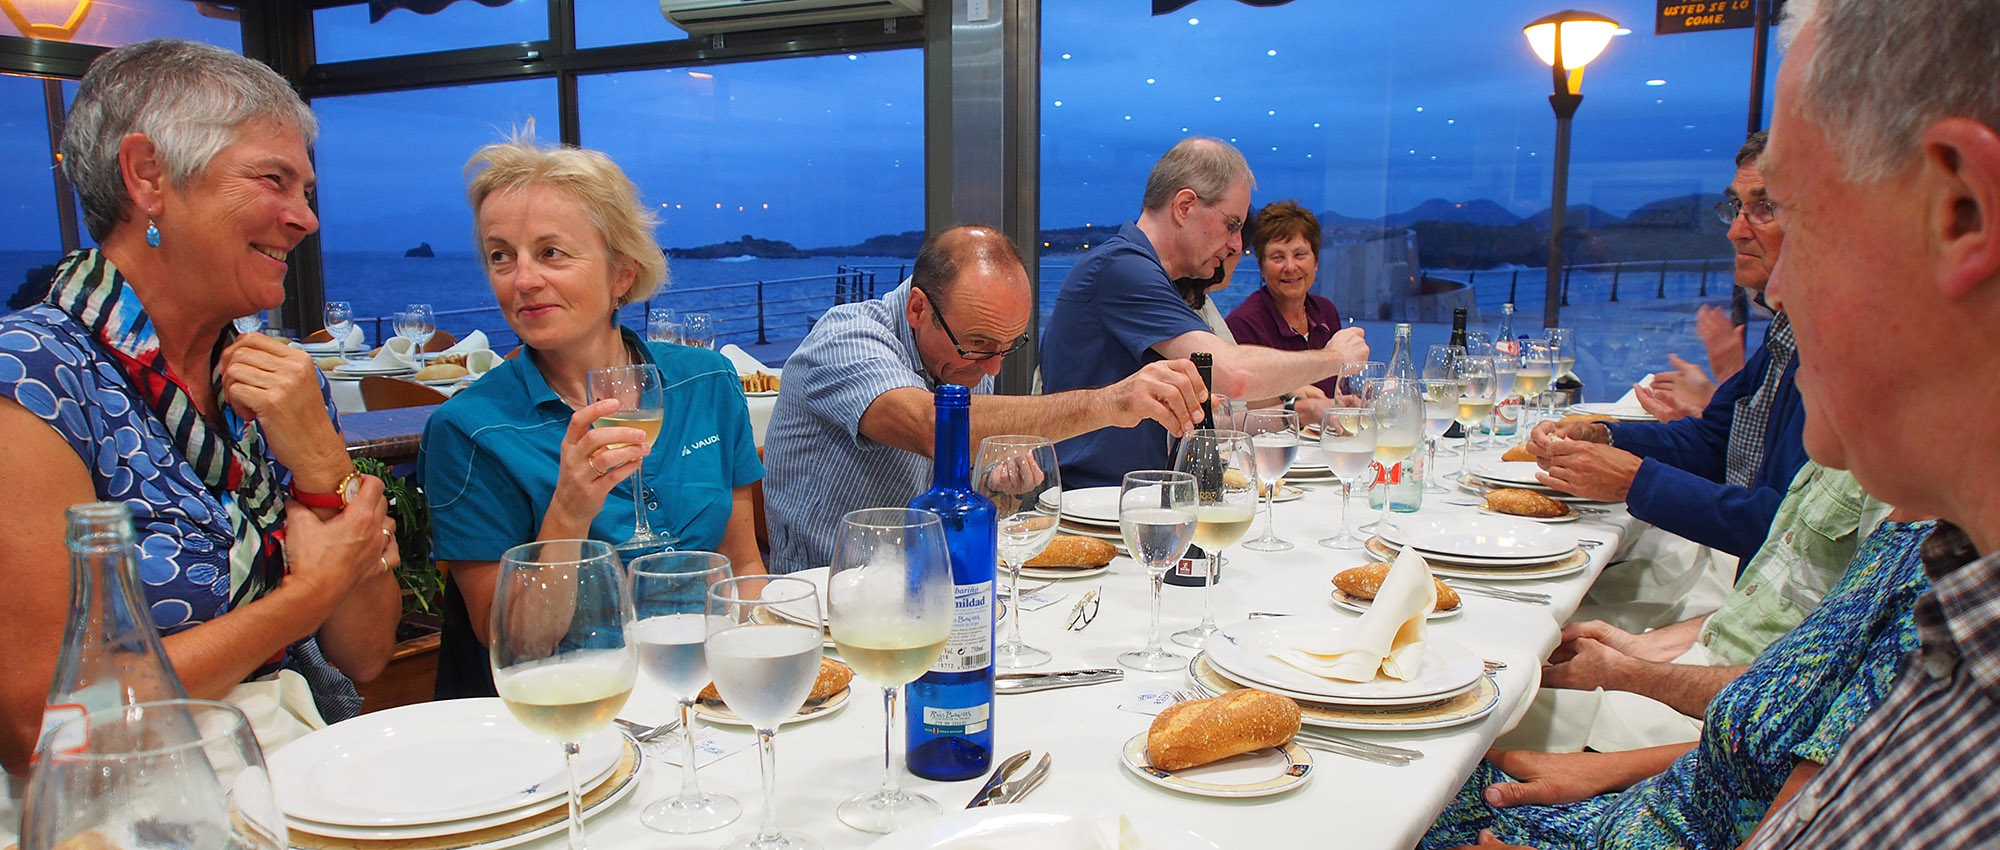 Anticipating a seafood feast at Hotel Astuy, Isla Playa on the Cantabrian coast